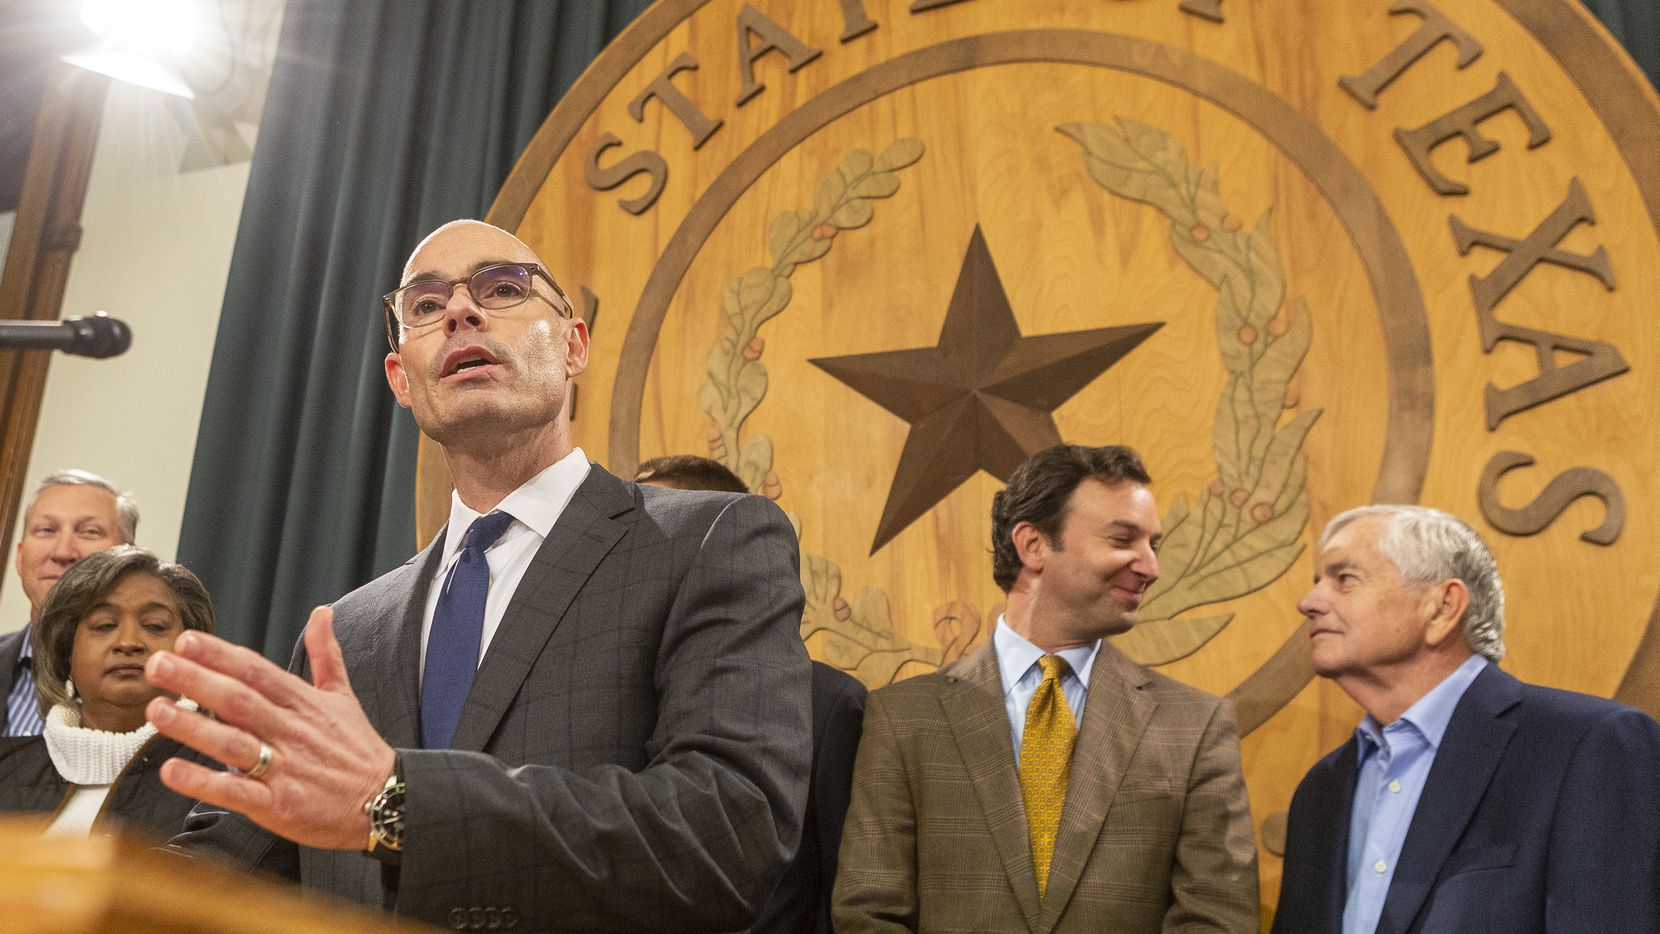 Rep. Dennis Bonnen, R-Angleton, announces he has the votes to be elected the next speaker of the Texas House for the coming session at the Texas Capitol in Austin on Monday.